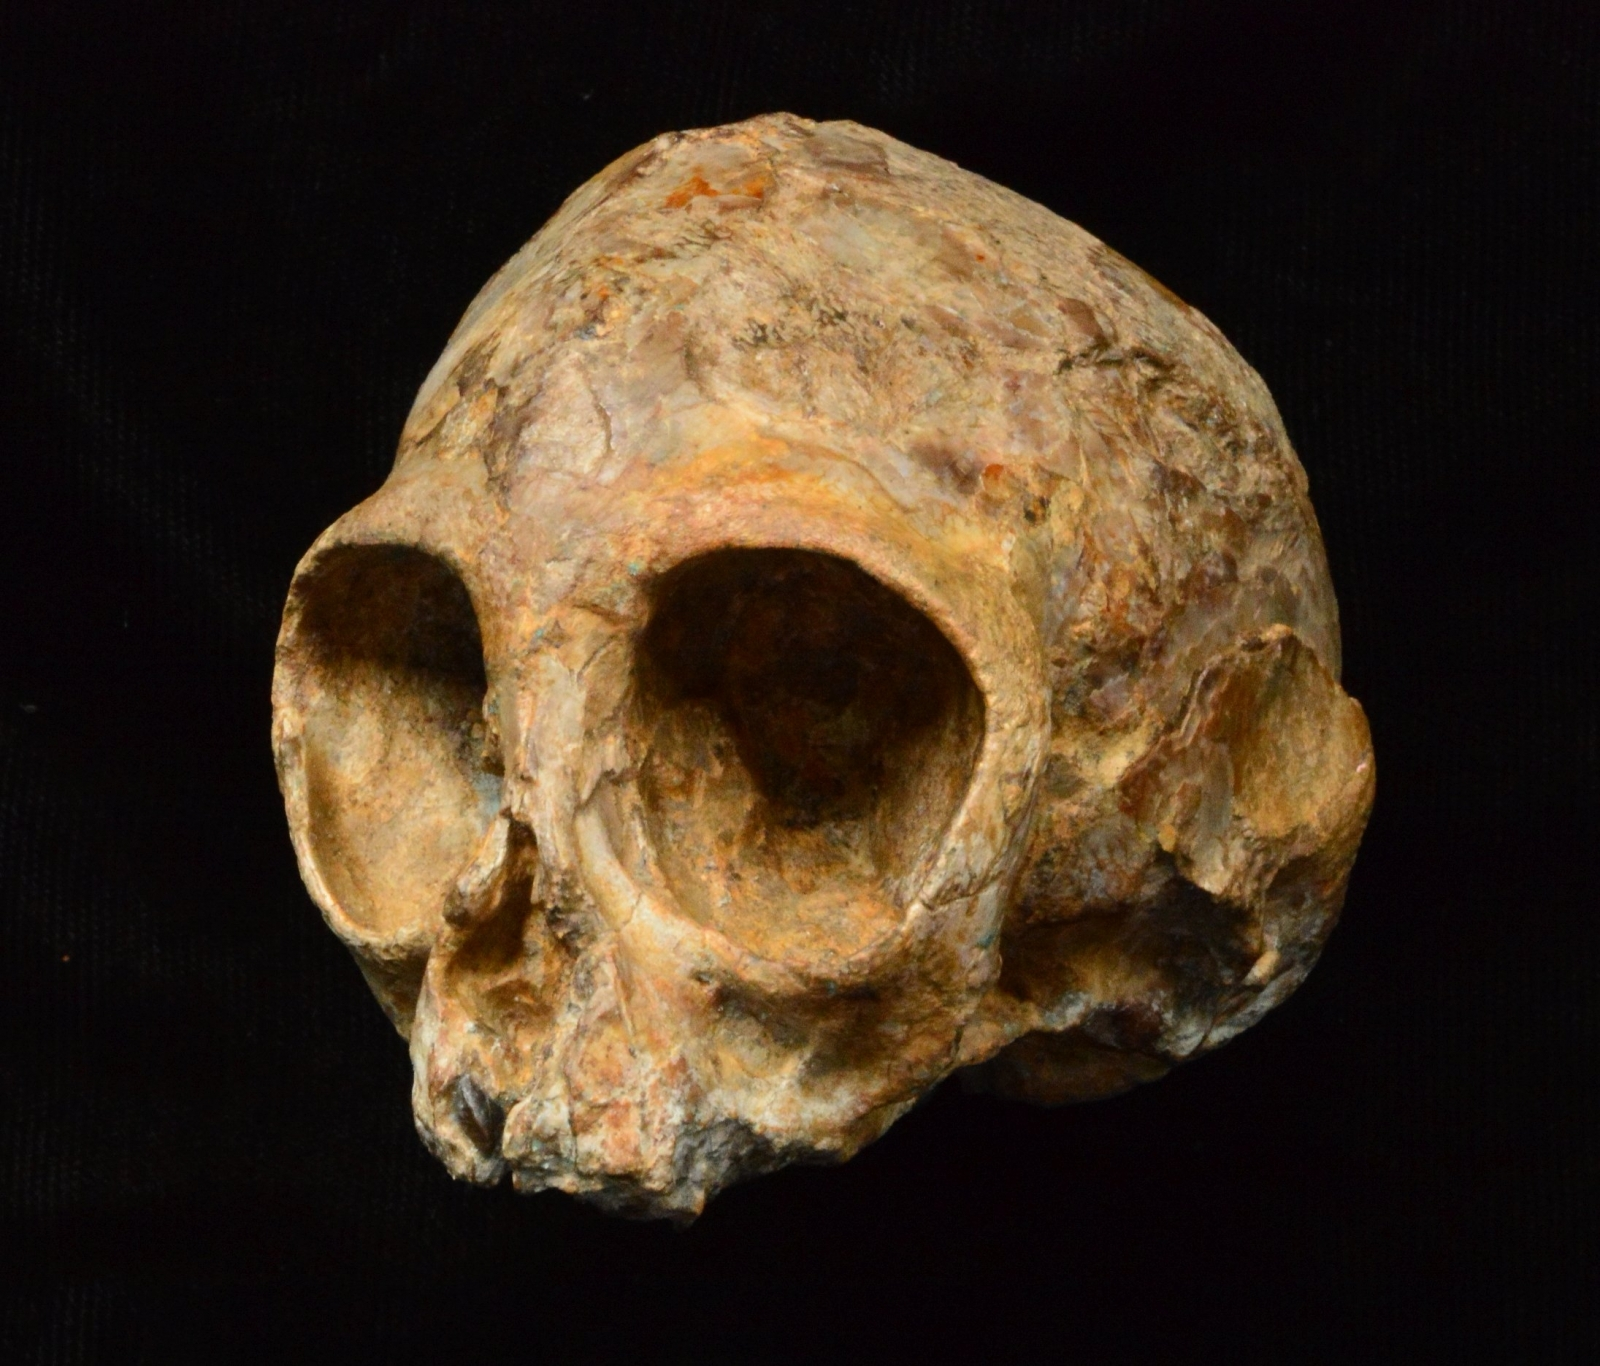 New Ape Species Identified from Ancient Skull